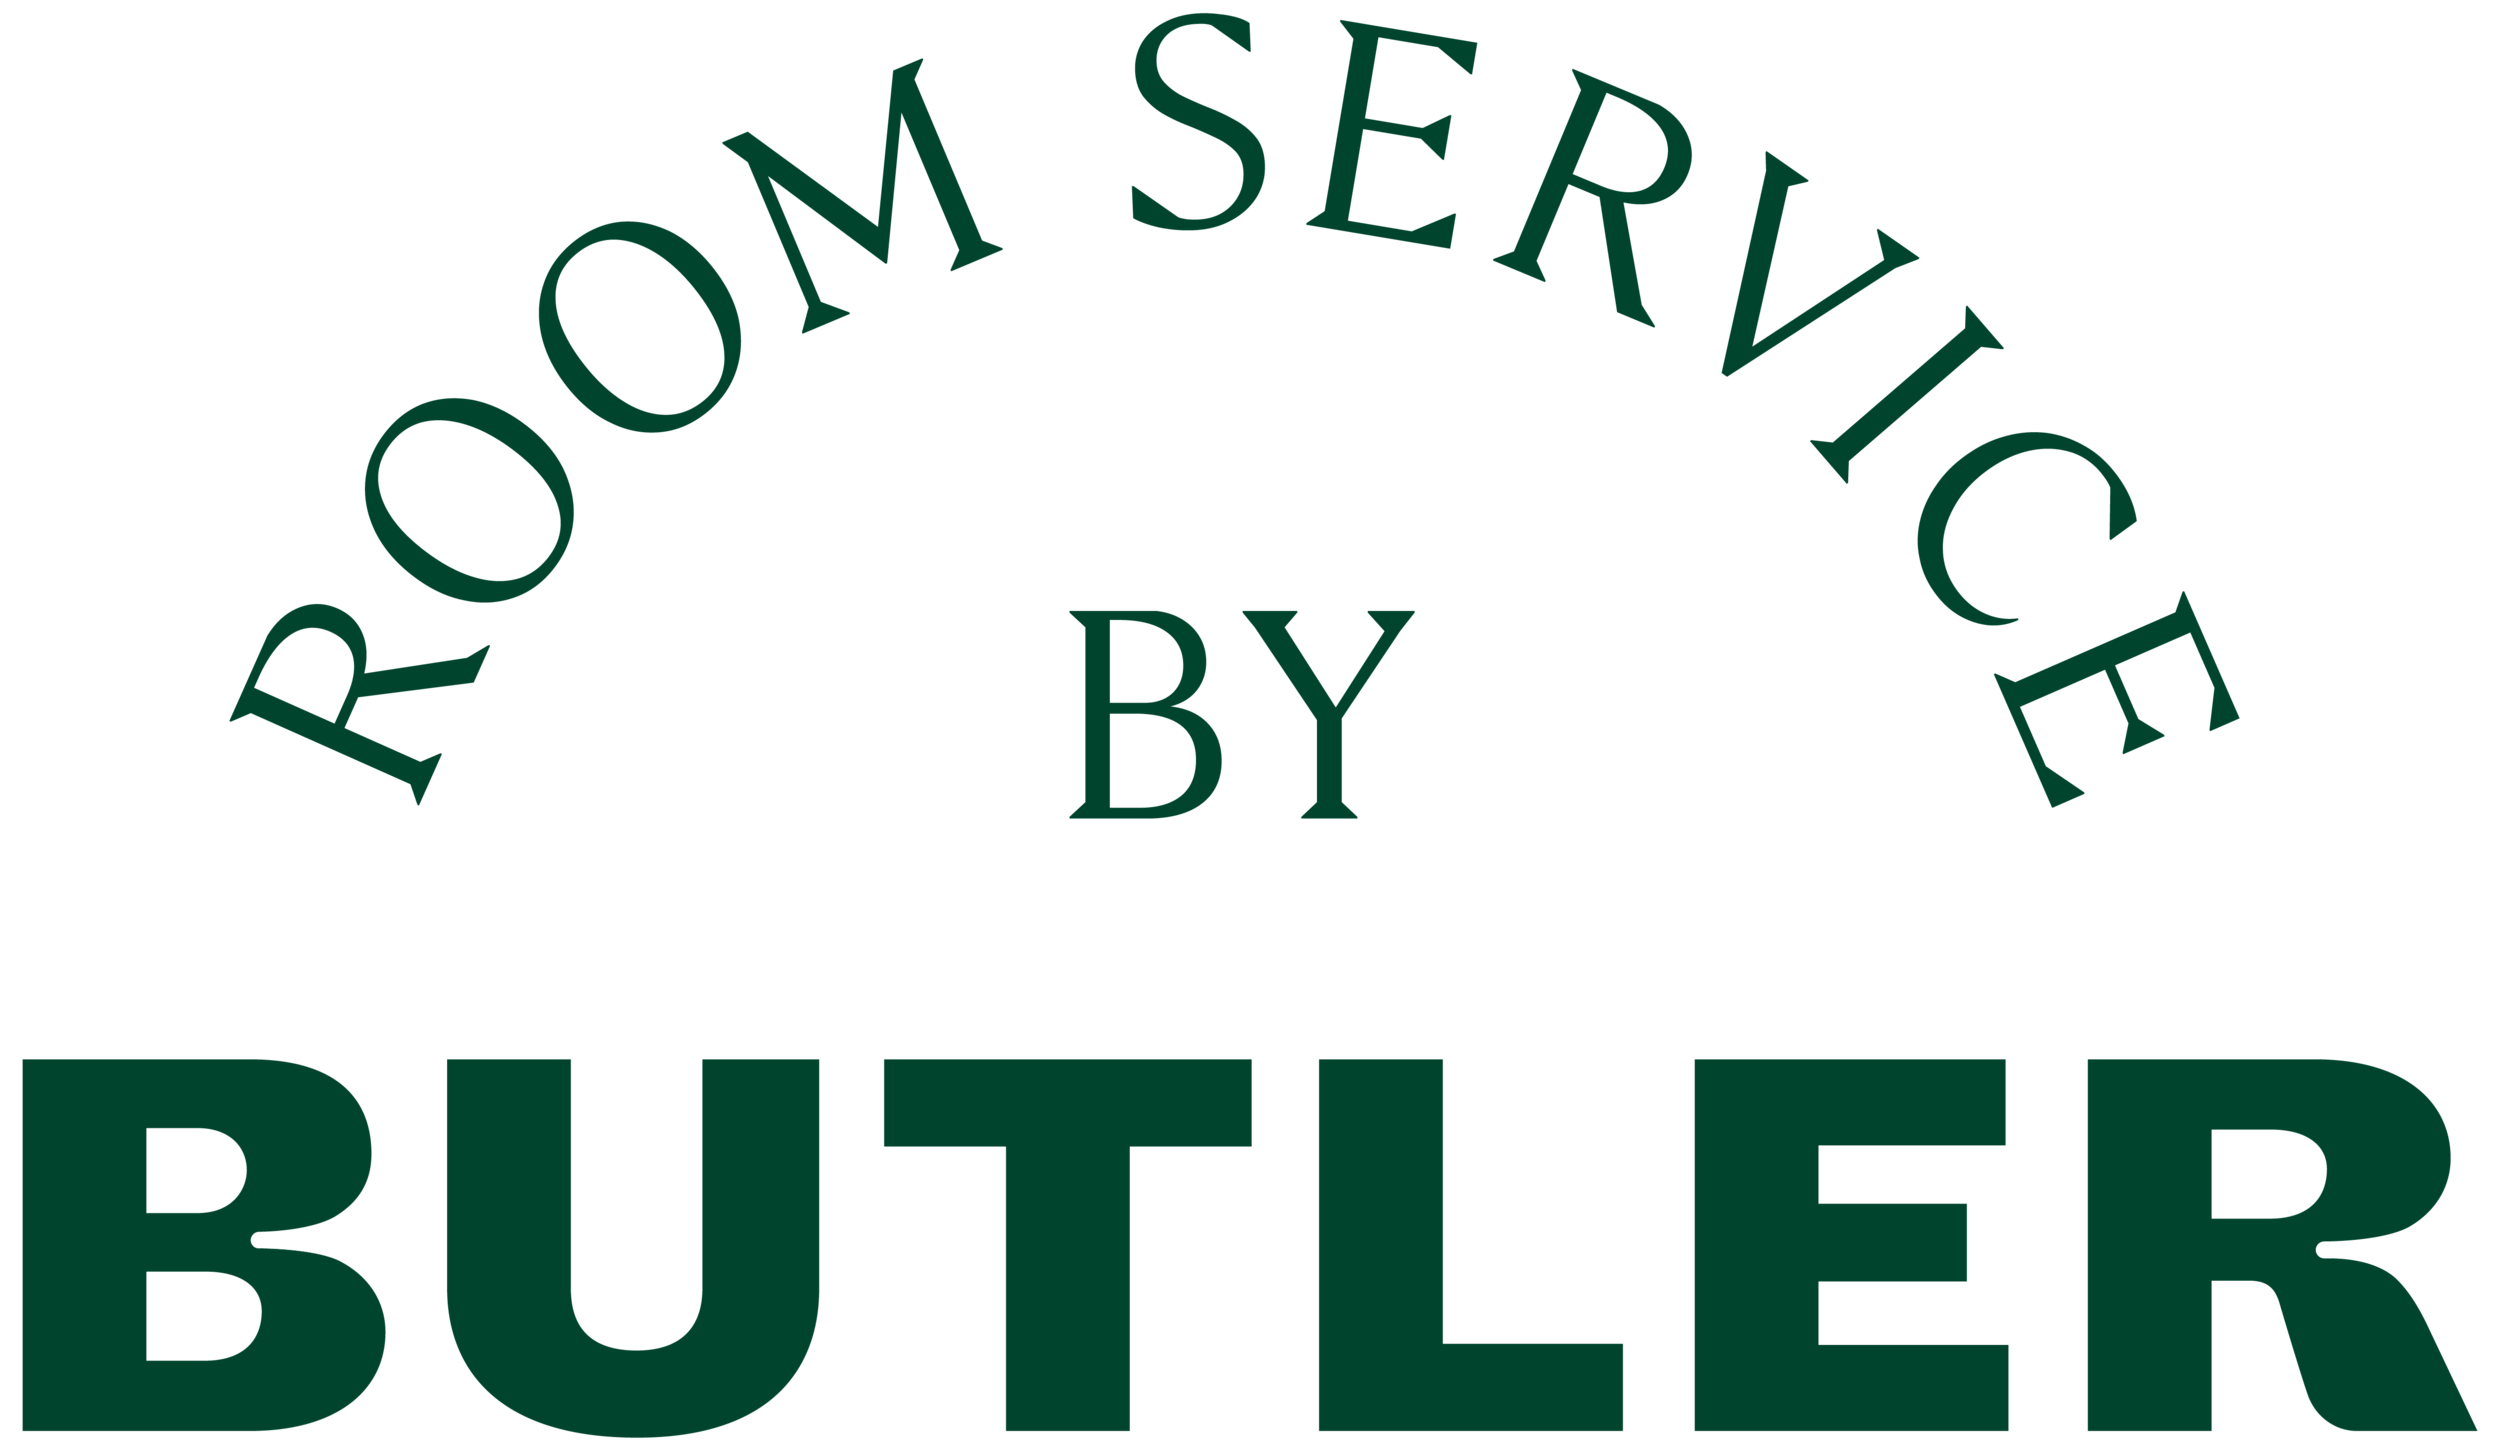 Butler.Room.Service.Badge.Green.png